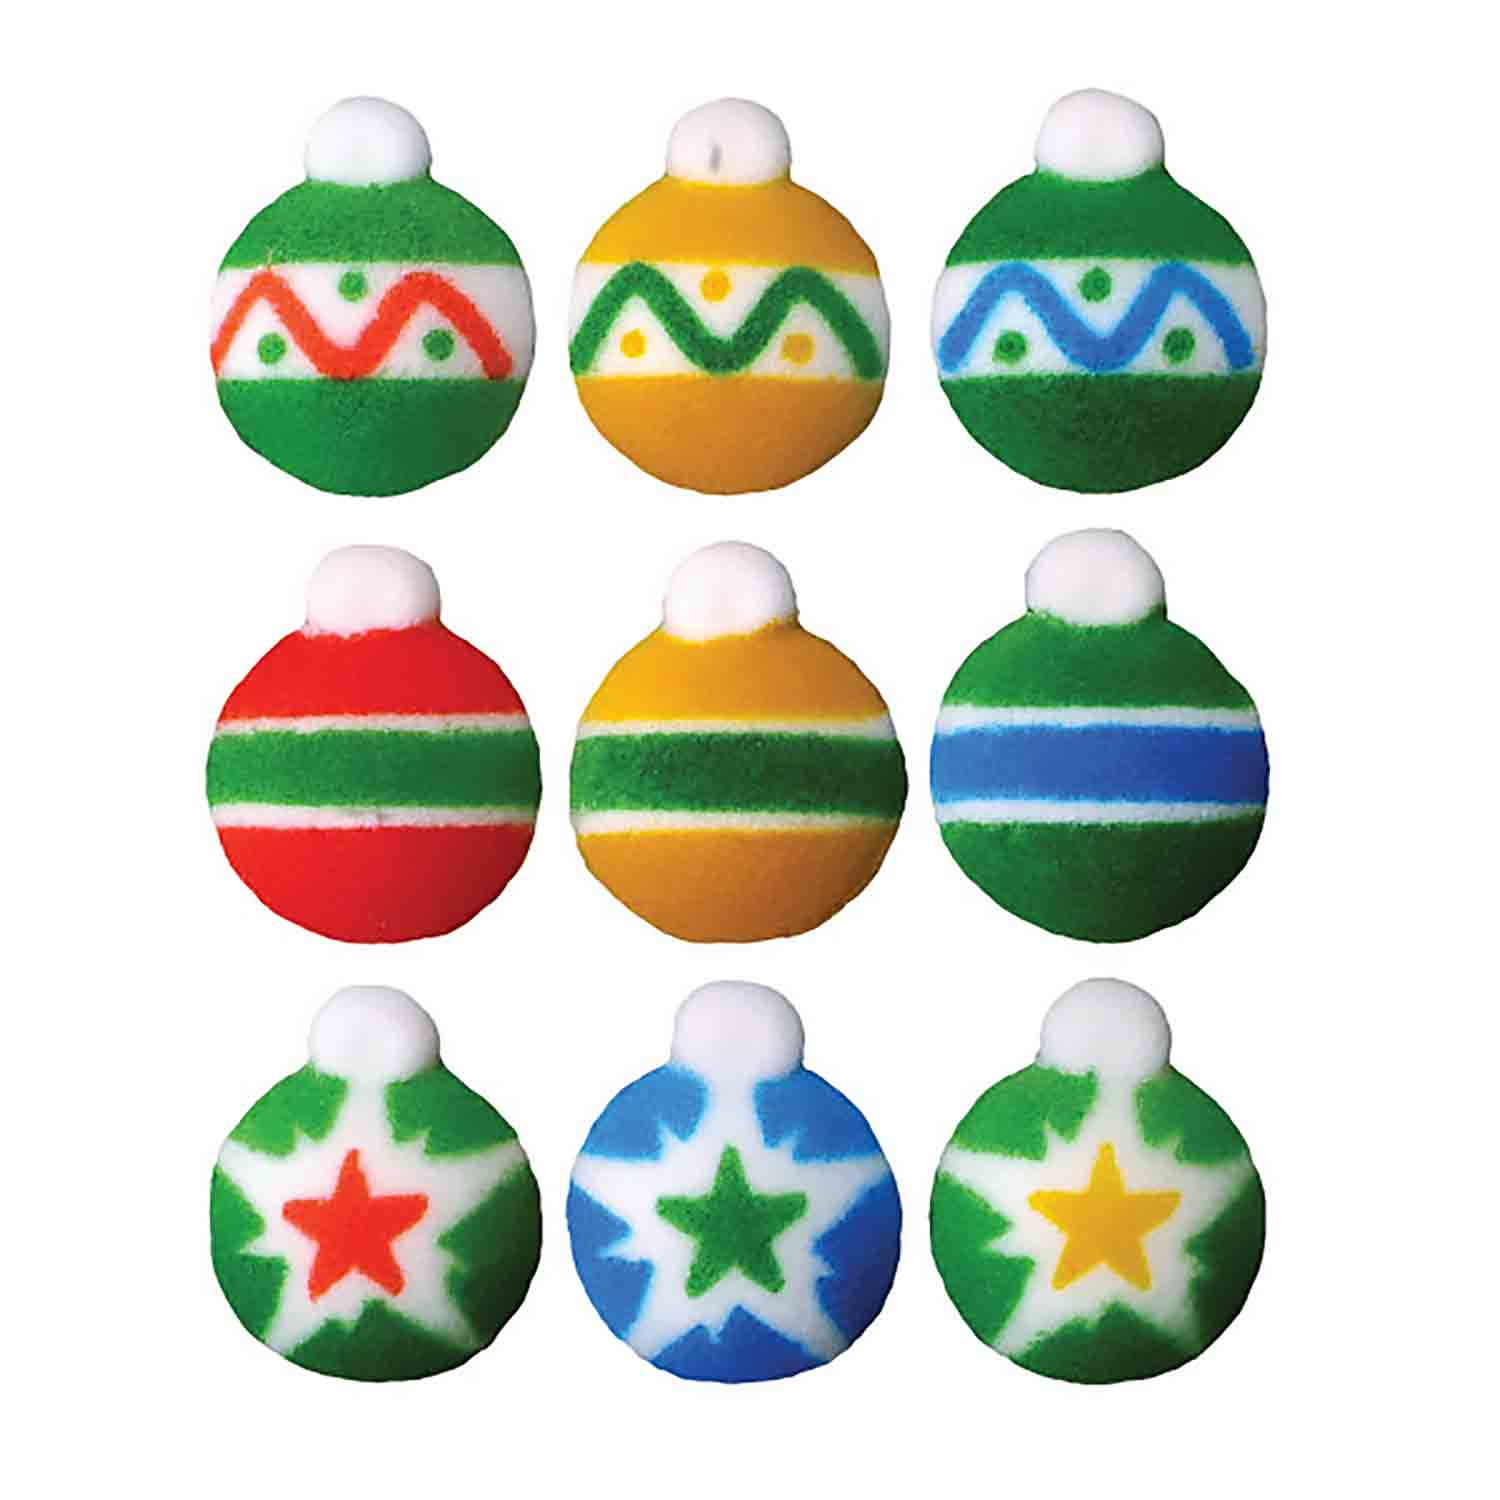 Dec-Ons® Molded Sugar - Mini Ornaments